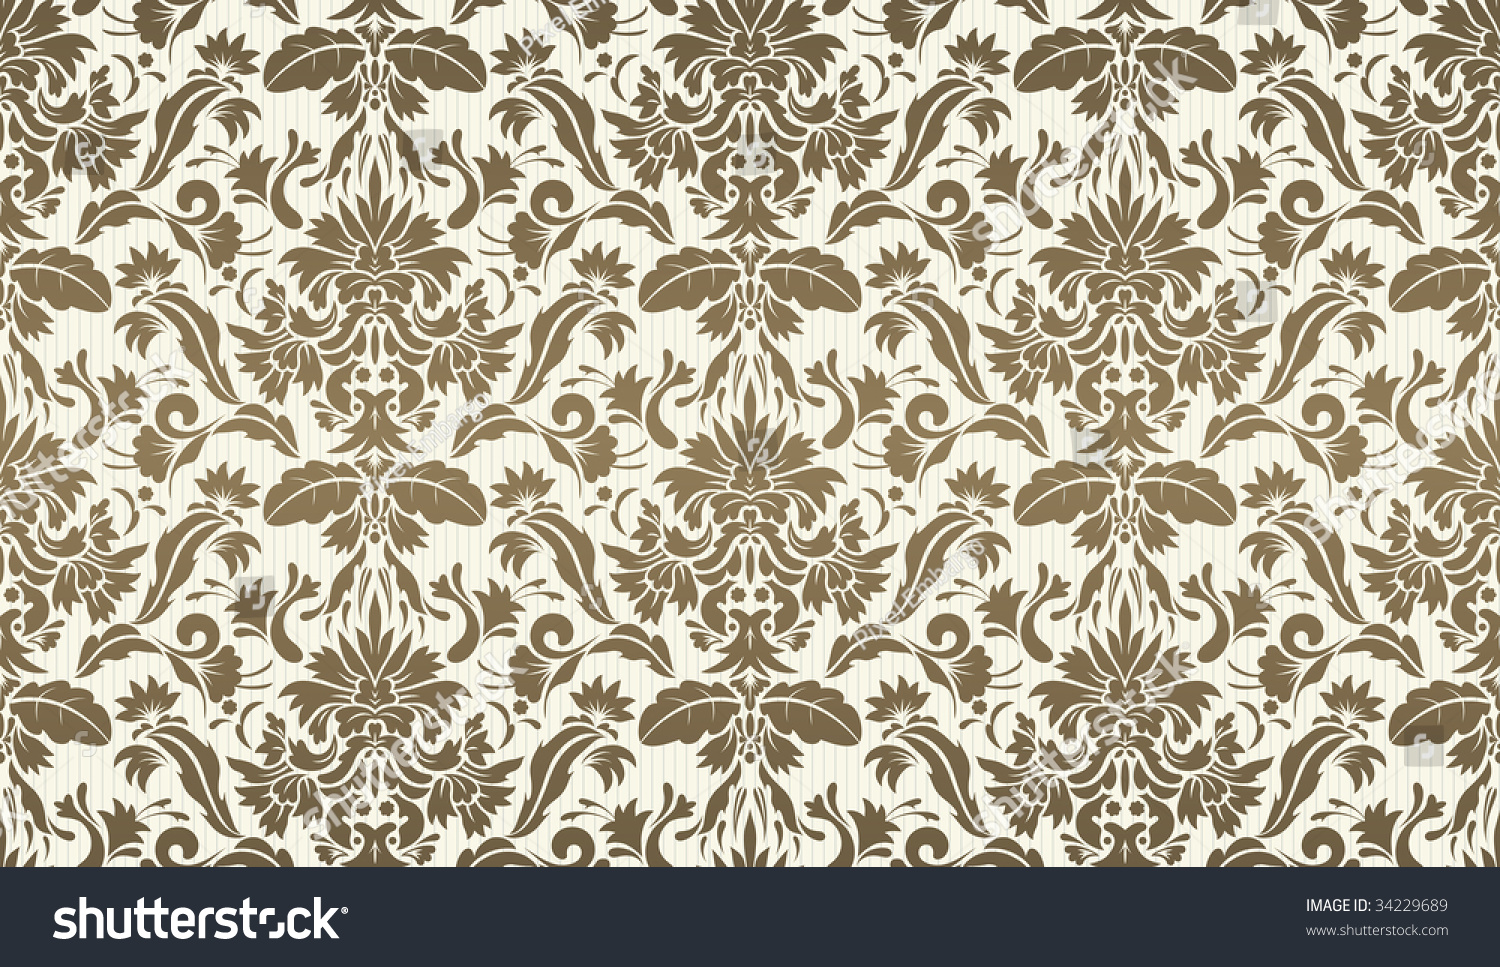 vector illustration of seamless ornate floral decorative wallpaper background - Decorative Wallpaper